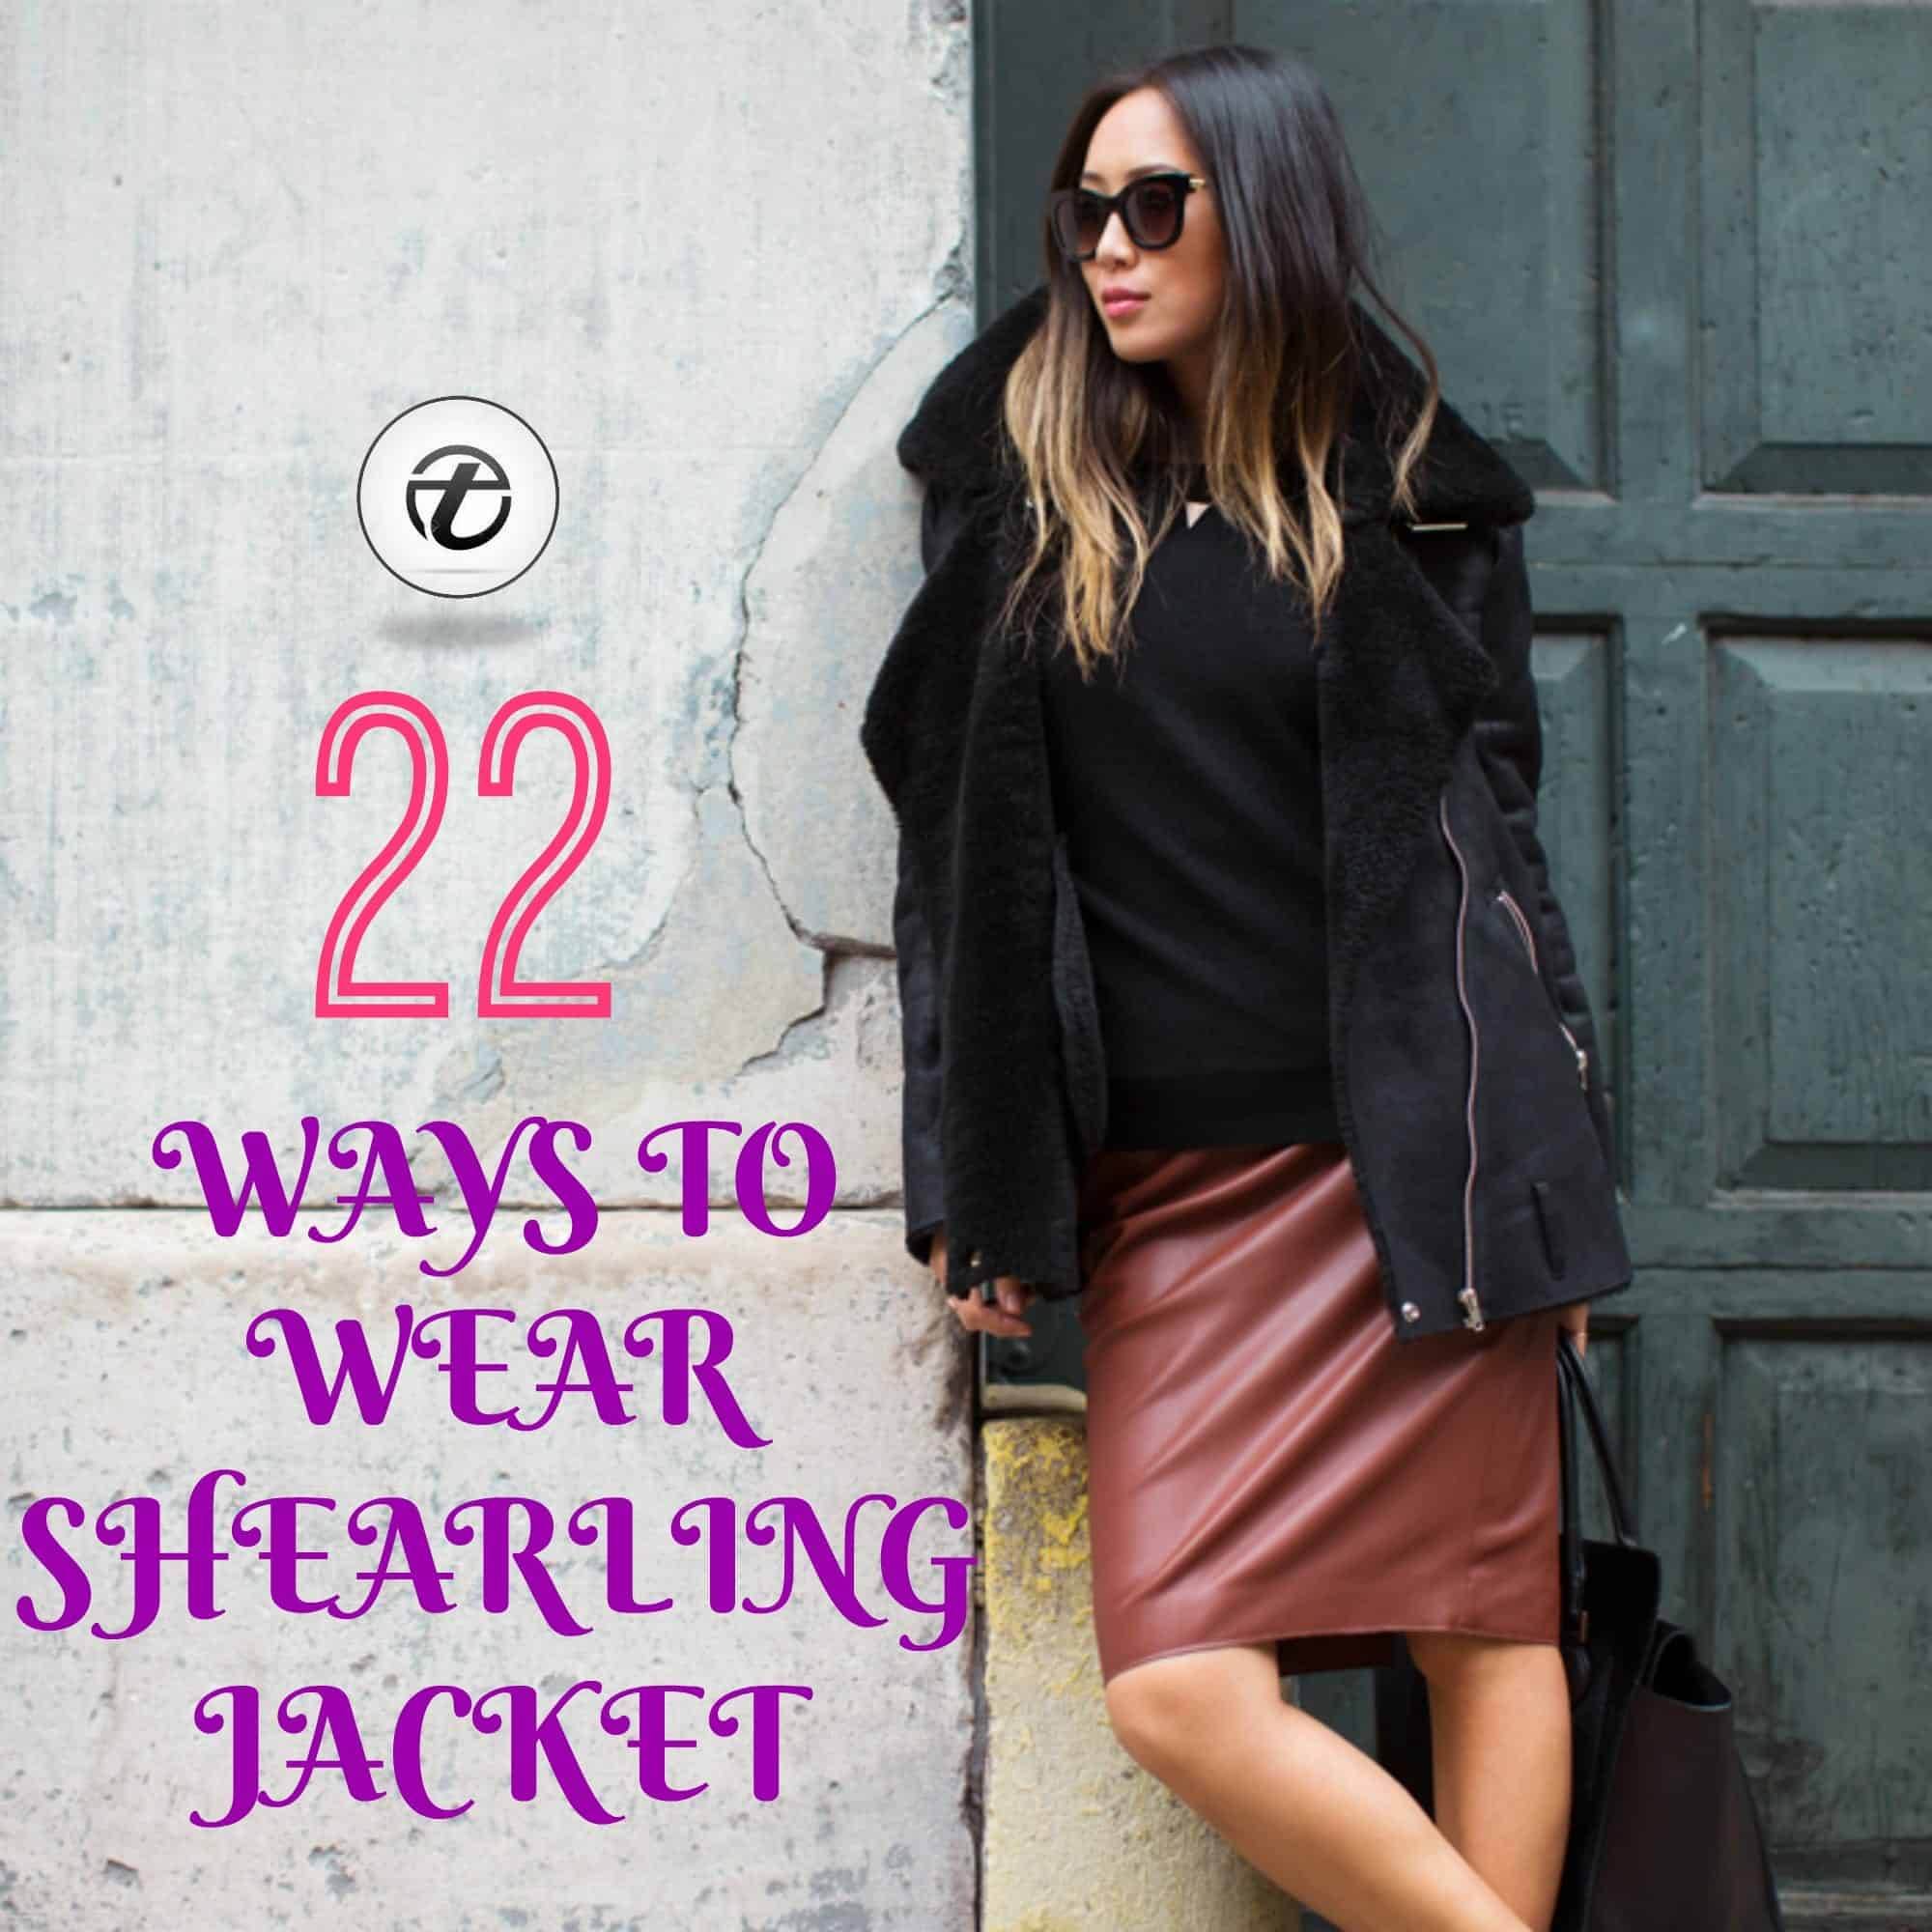 Women Outfits with Shearling Coats-19 Ways to Wear Stylishly